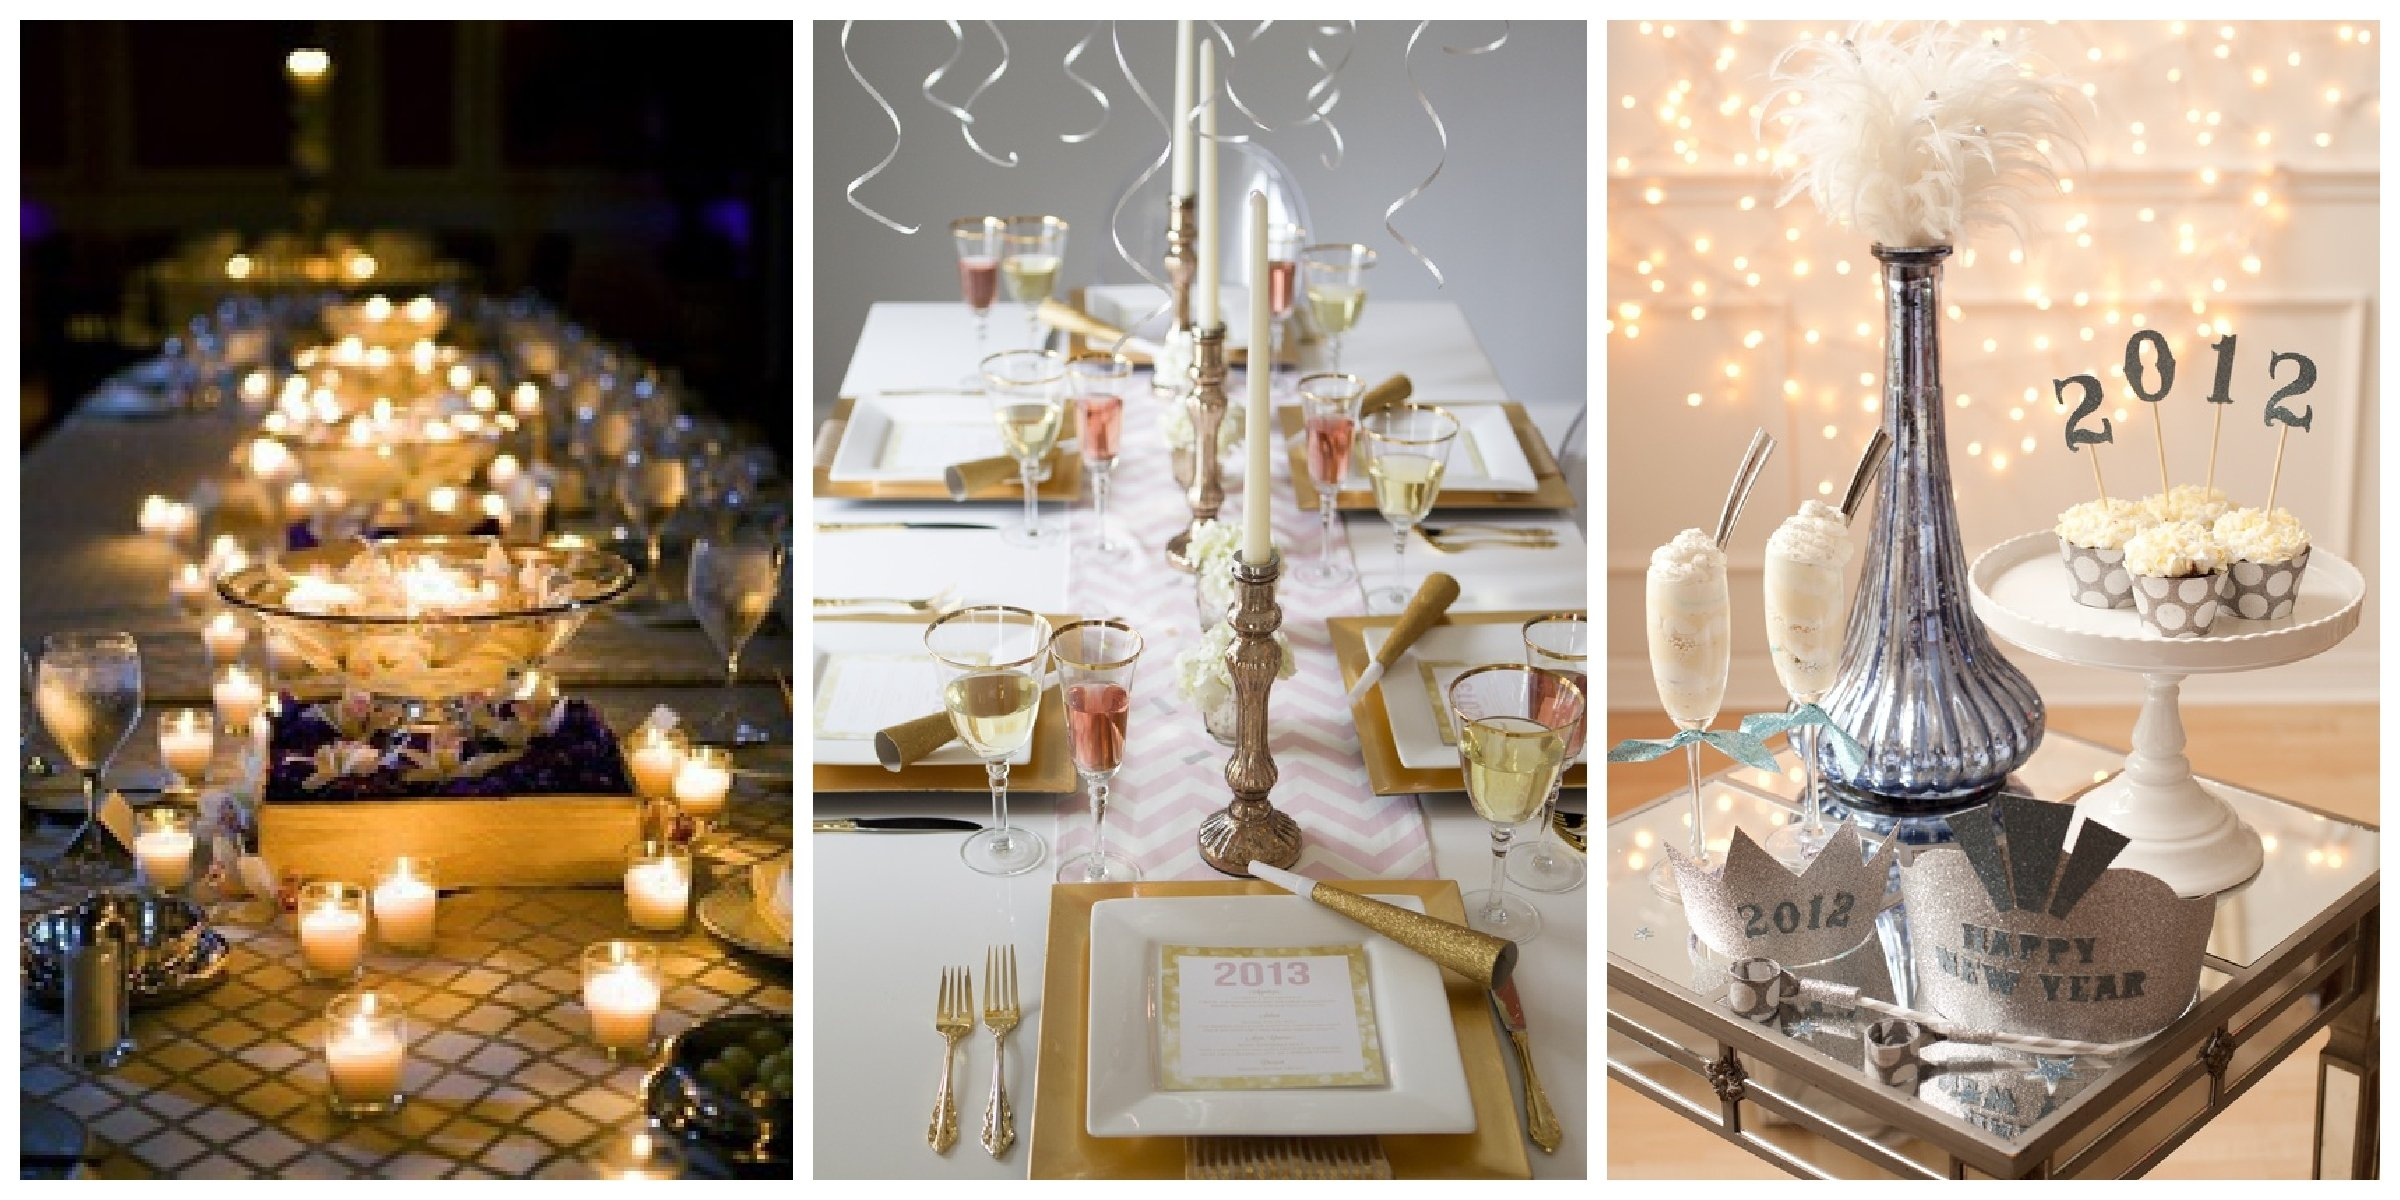 10 Pretty New Years Eve Decorations Ideas glamorous decorating ideas new years eve gallery simple design 2020